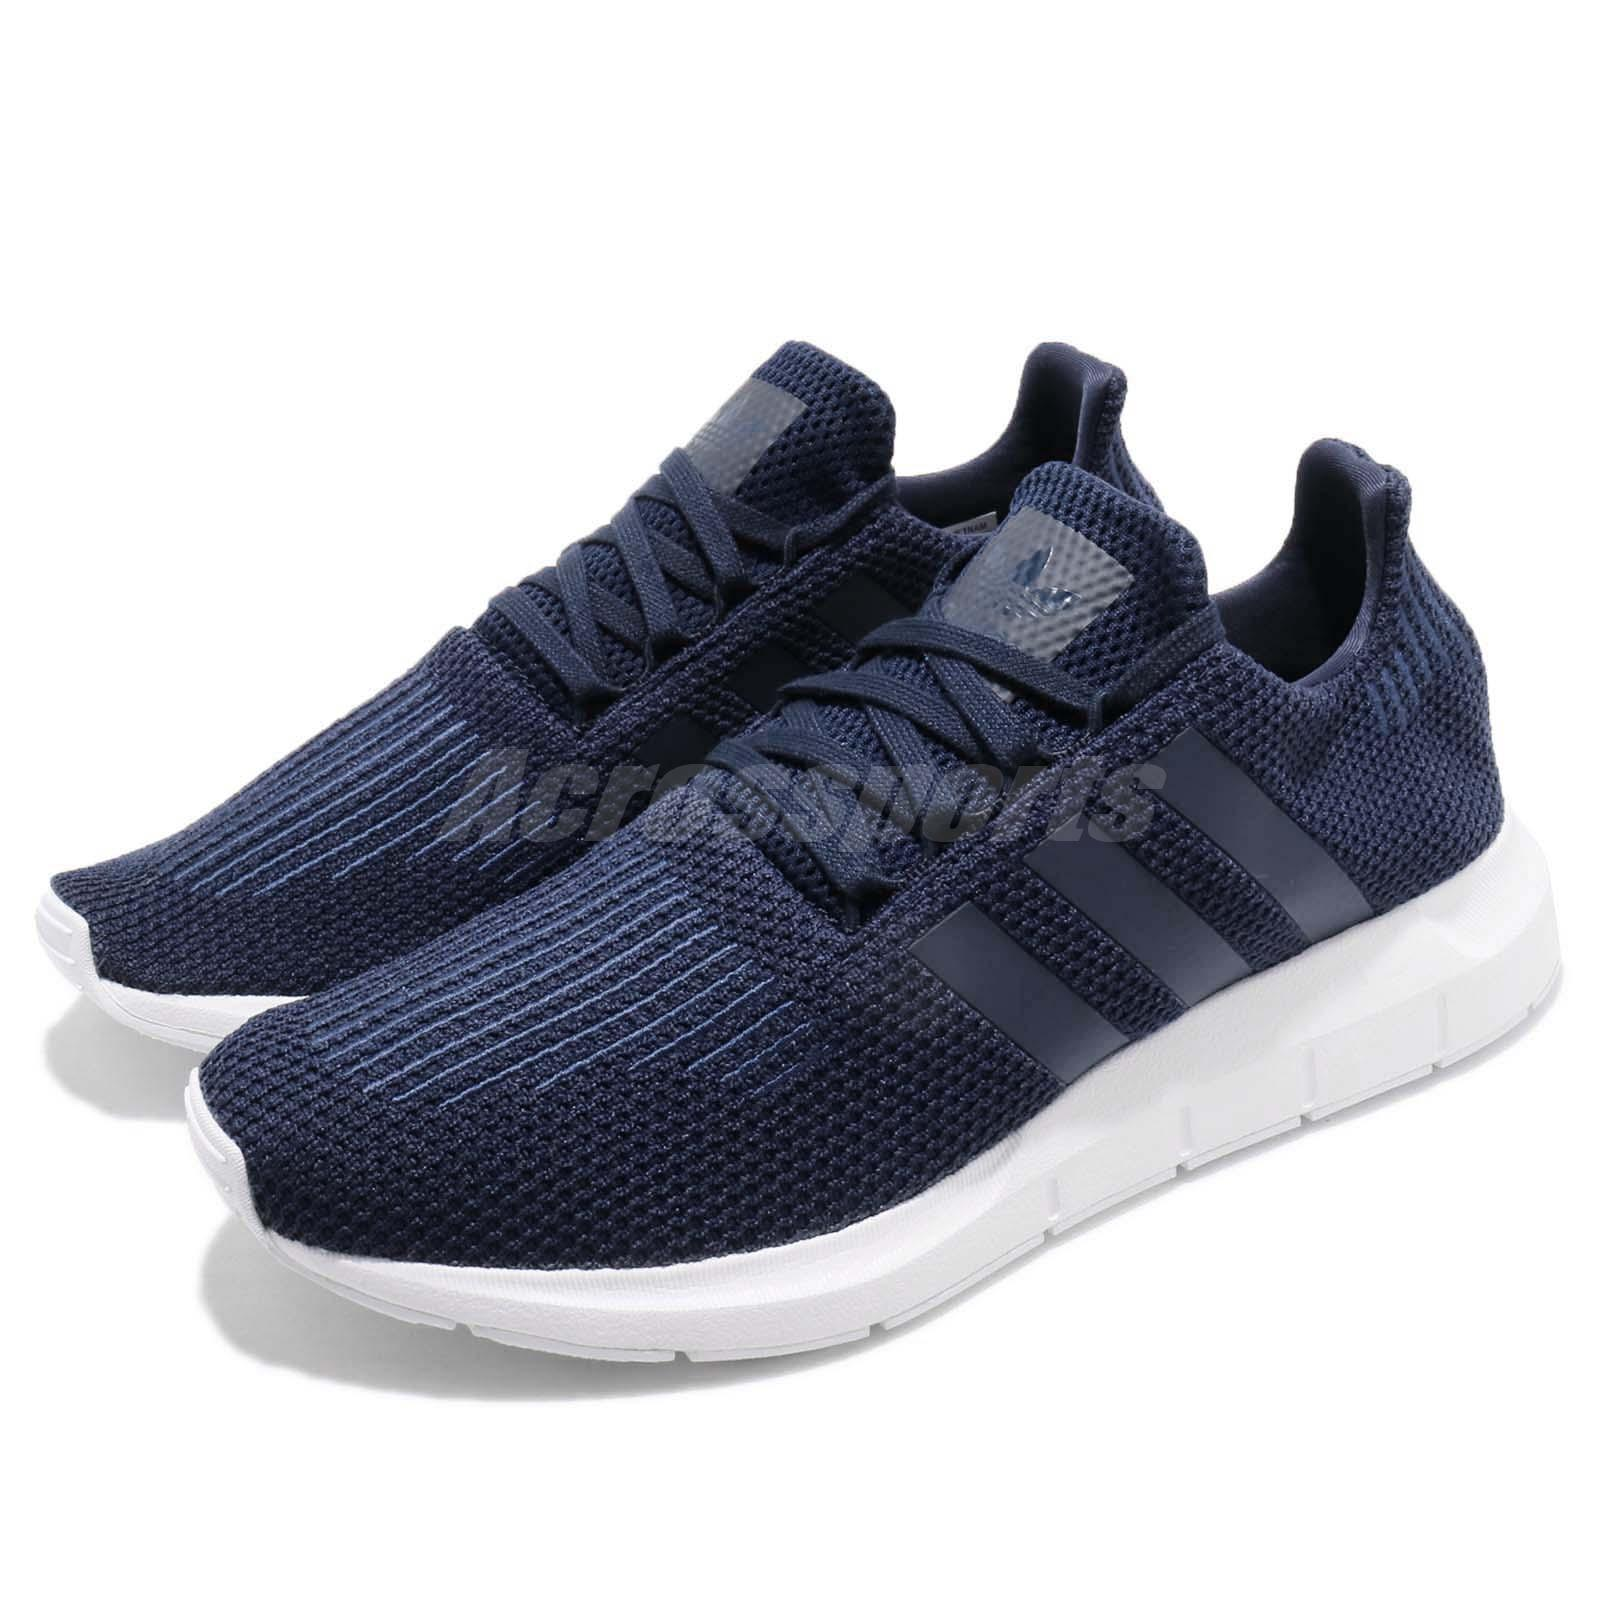 competitive price 35ddf 5c5d2 Details about adidas Swift Run Collegiate Navy White Men Running Casual Shoes  Sneakers B37727